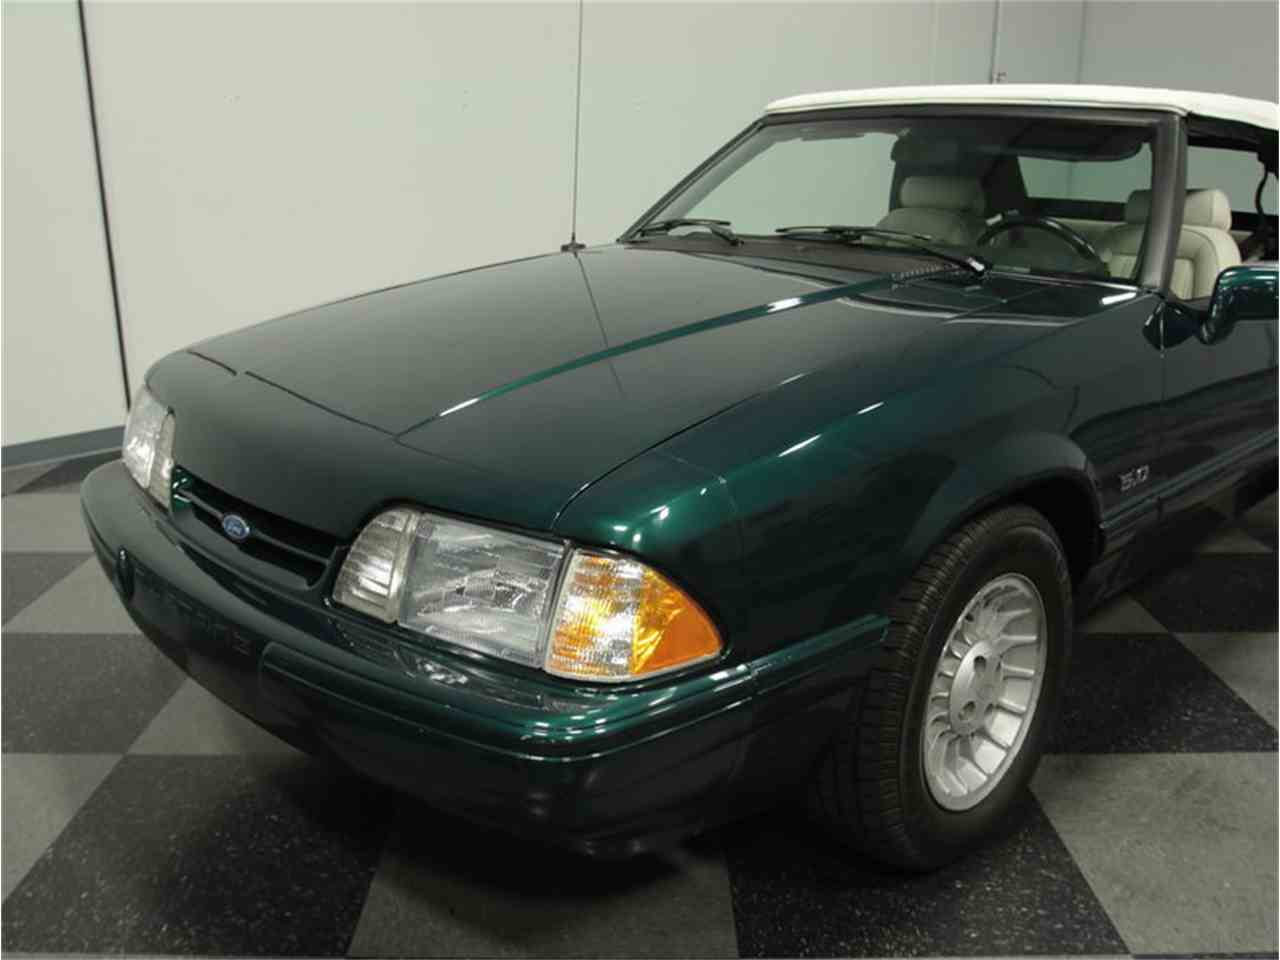 Large Picture of 1990 Ford Mustang LX 7-UP Edition - $12,995.00 Offered by Streetside Classics - Atlanta - IRSA